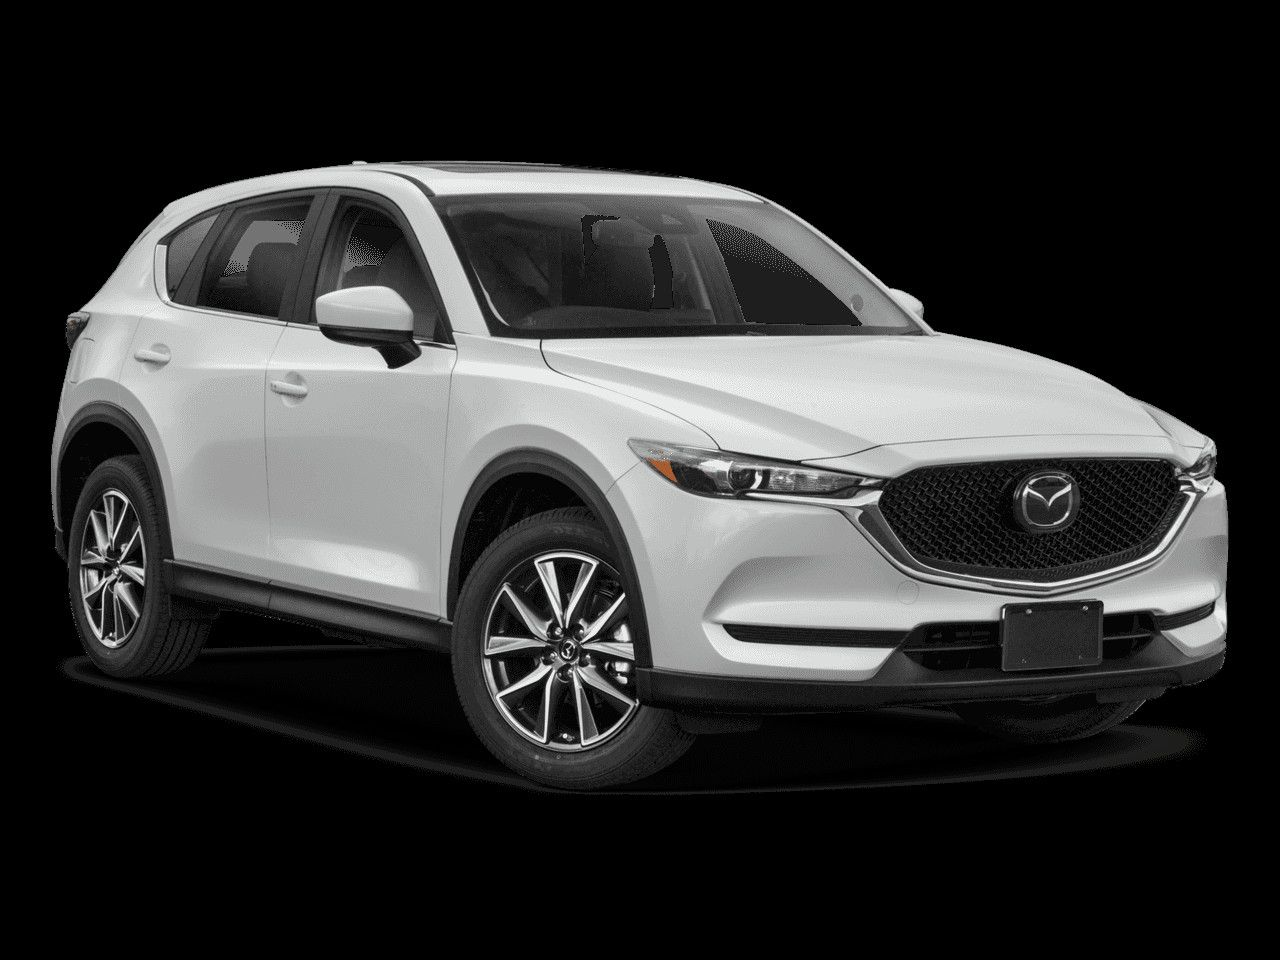 Pin by Aliando on I LIKE Mazda cx 9, Mazda, Car